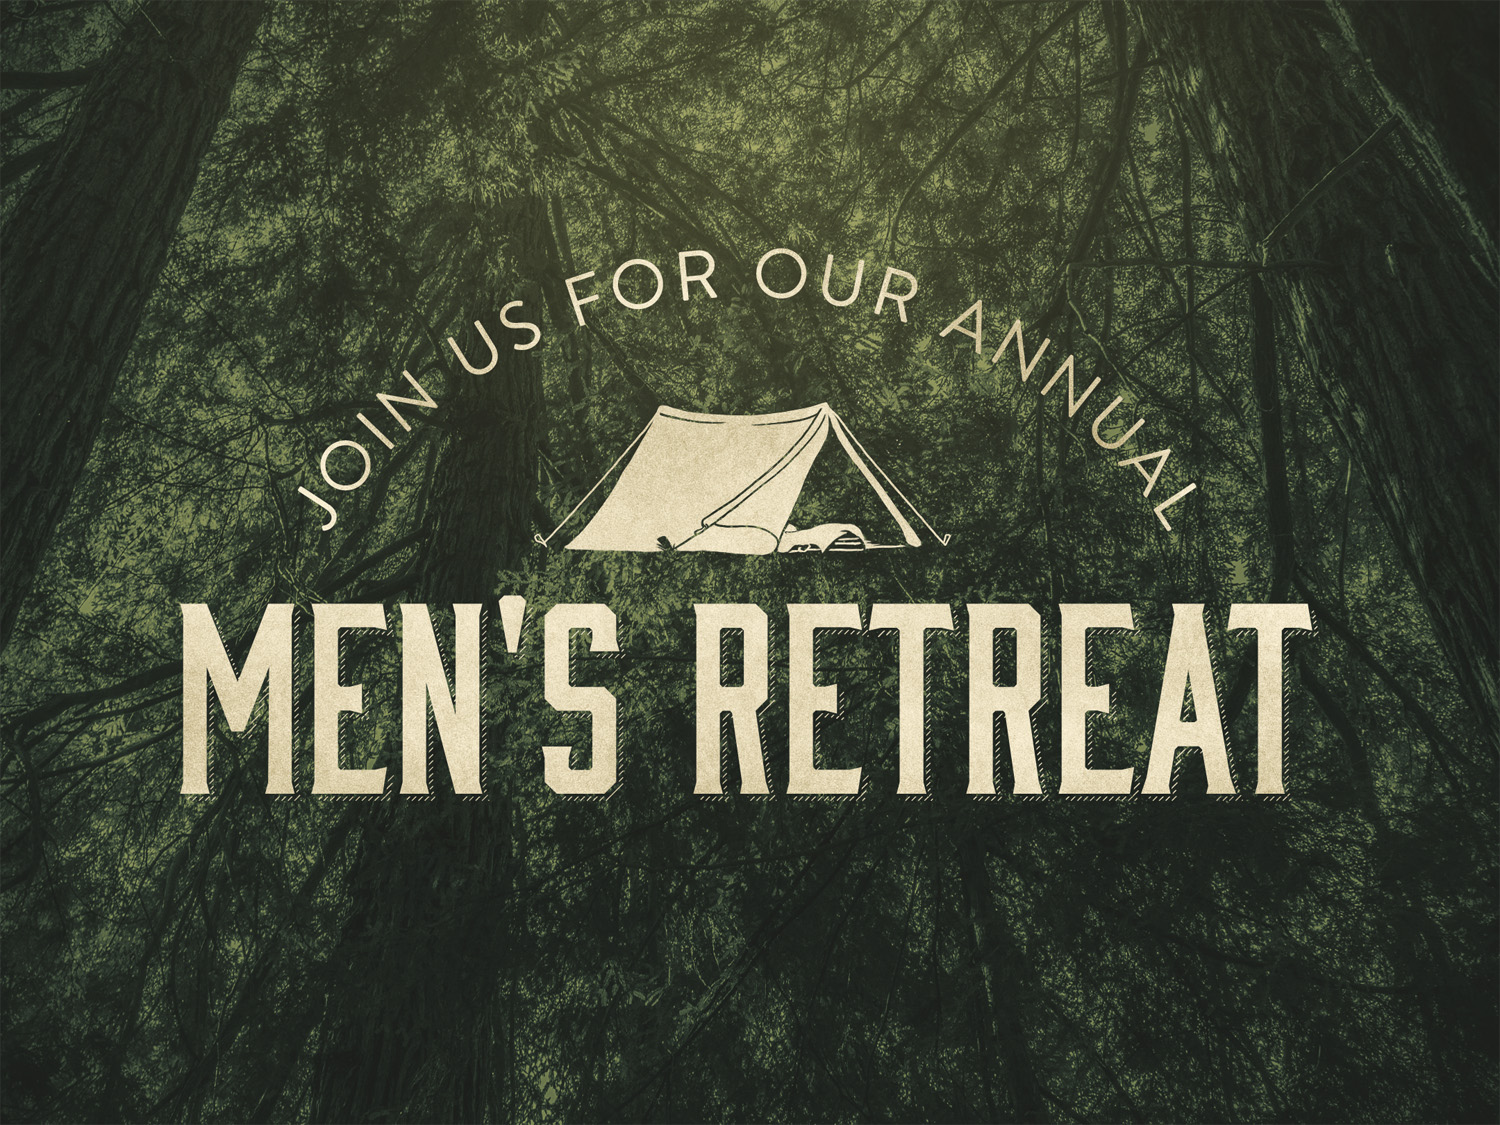 join_us_for_our_annual_men_s_retreat-title-2-still-4x3